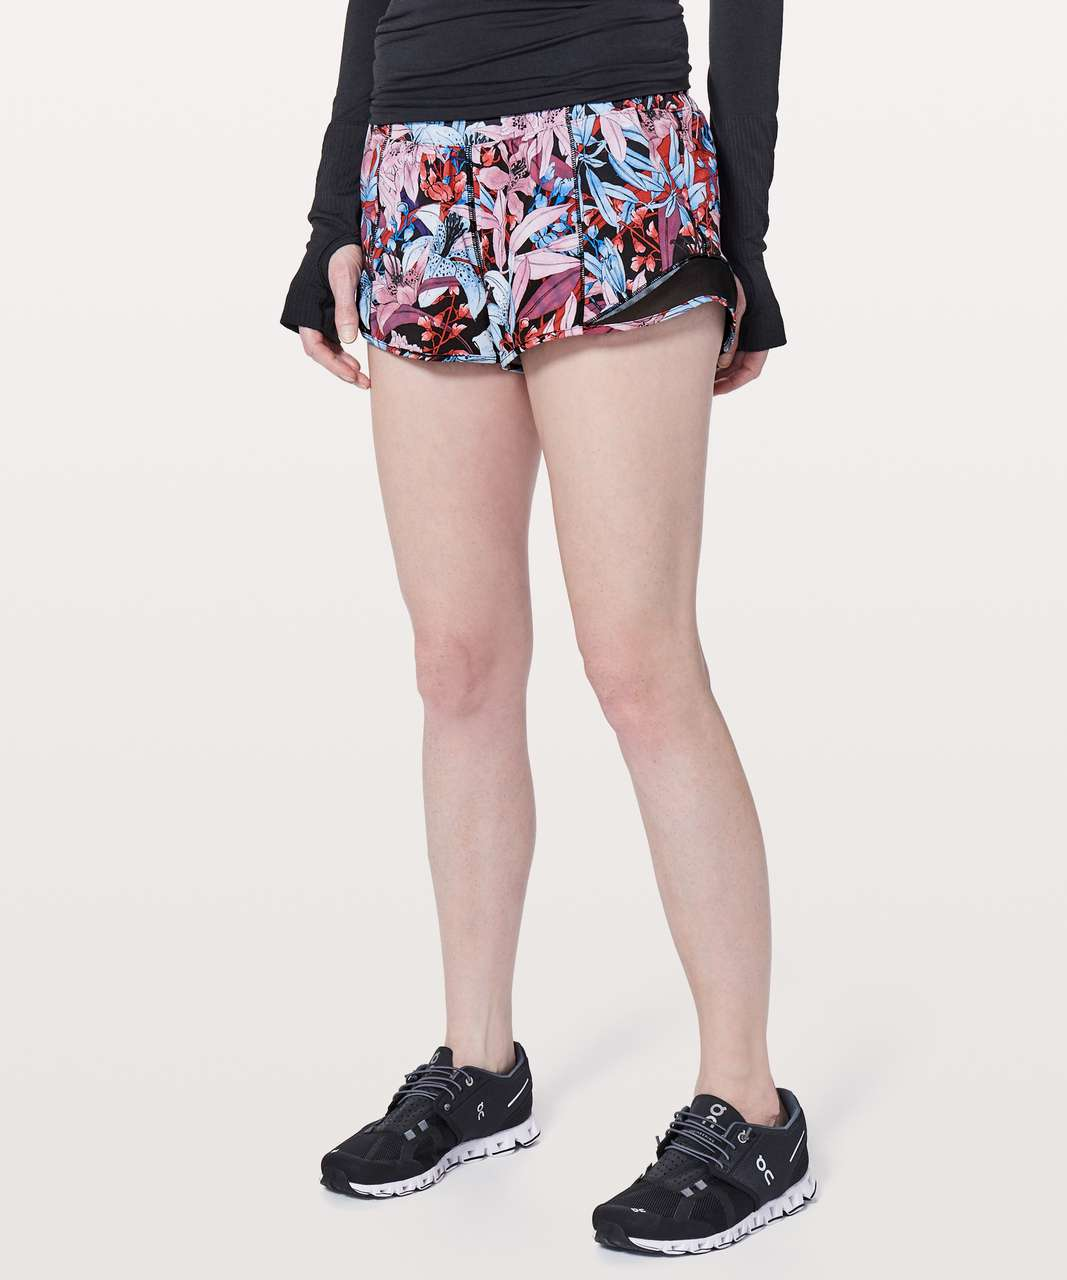 "Lululemon Hotty Hot Short II *2.5"" - Lush Lillies Multi / Black"